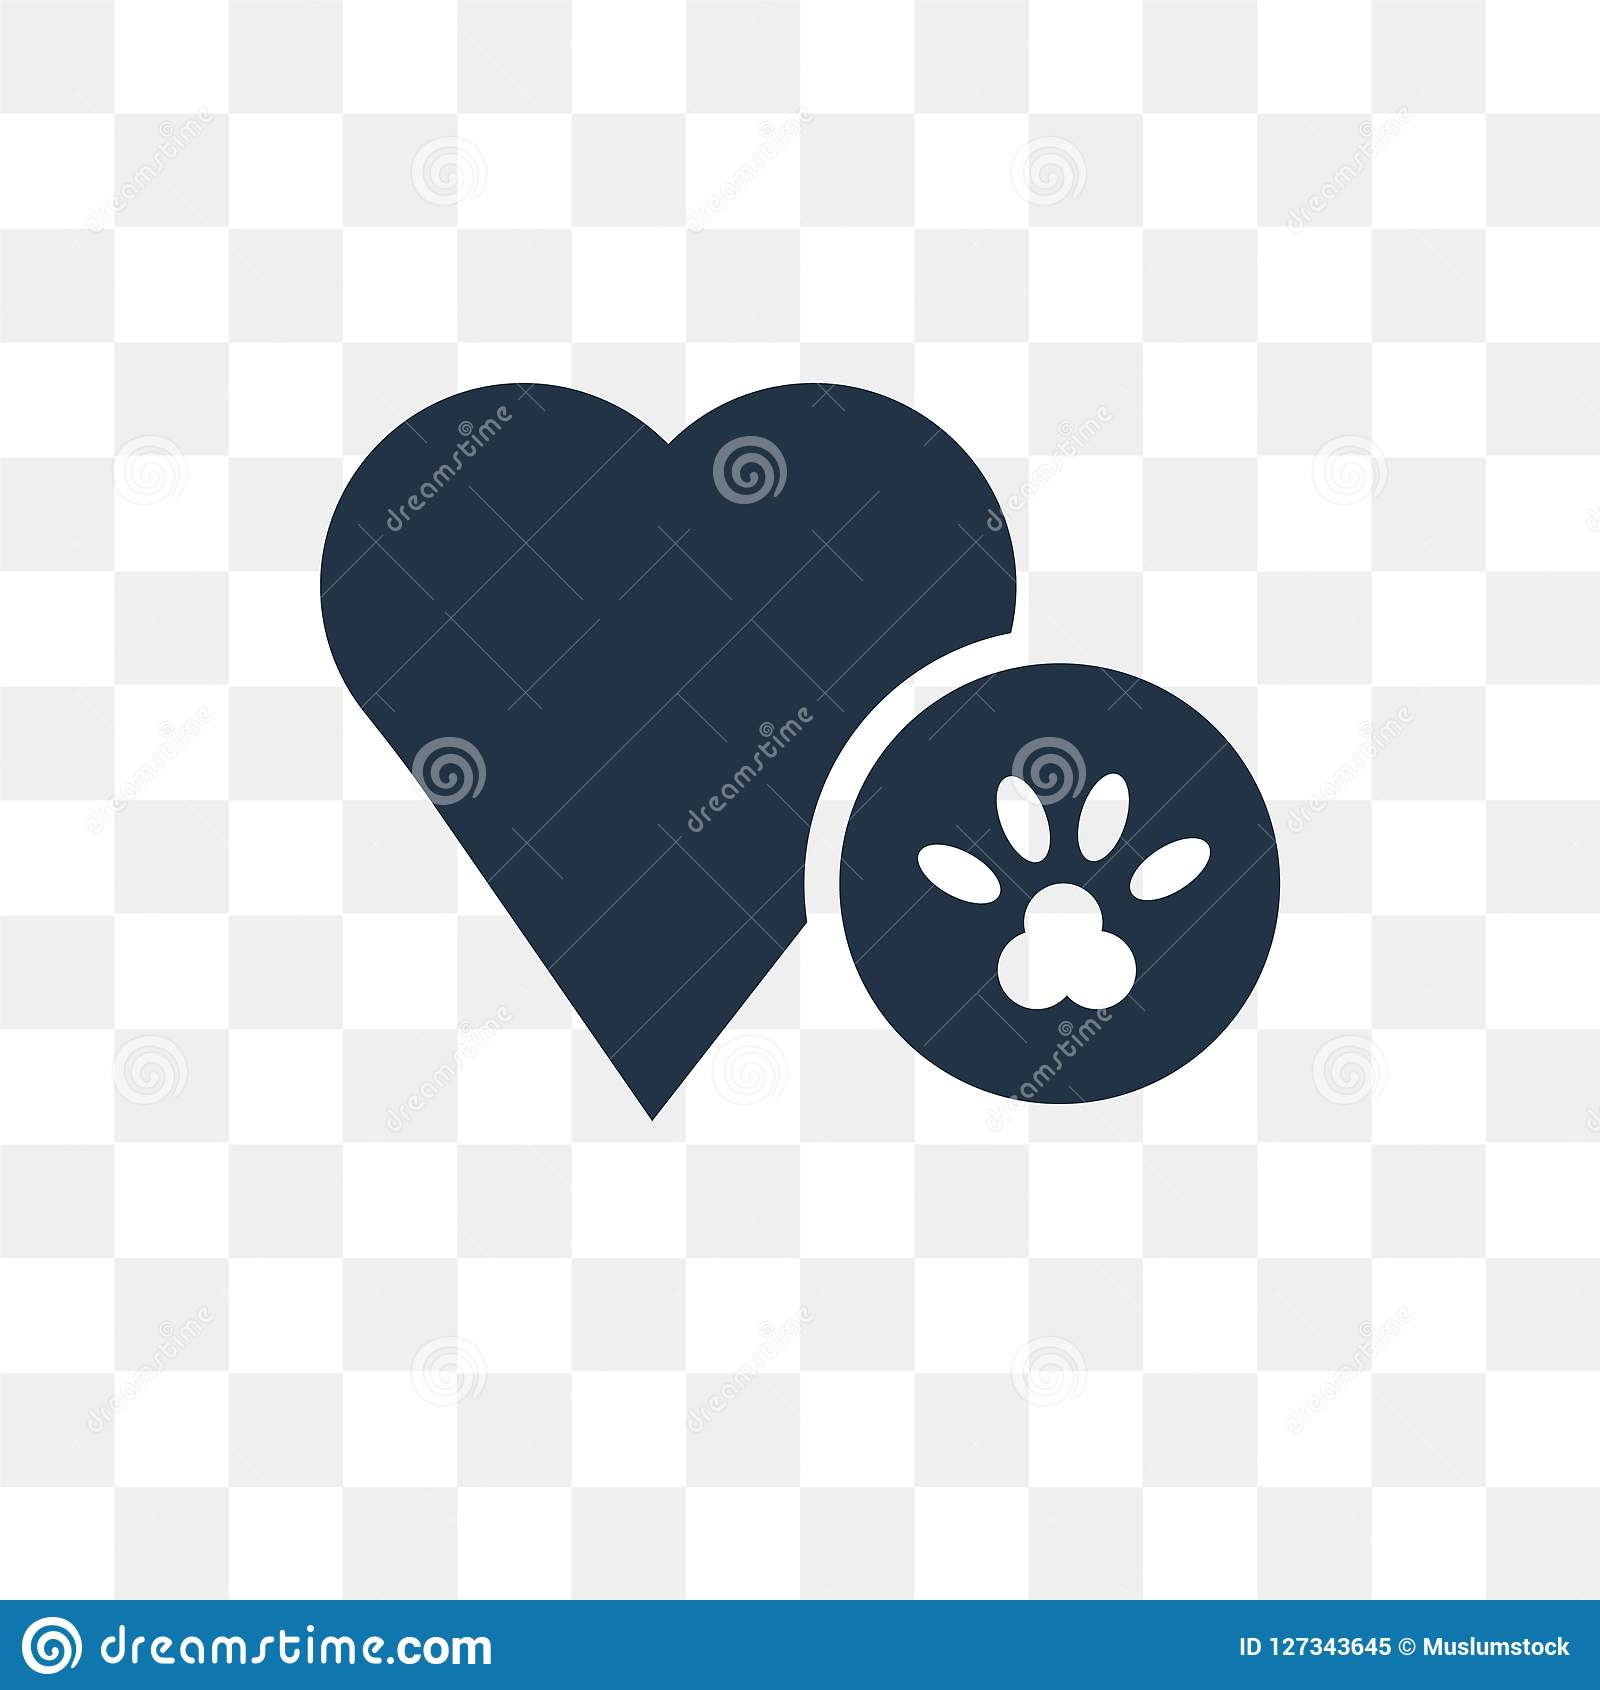 Dog Pawprint Vector Icon Isolated On Transparent Background, Dog